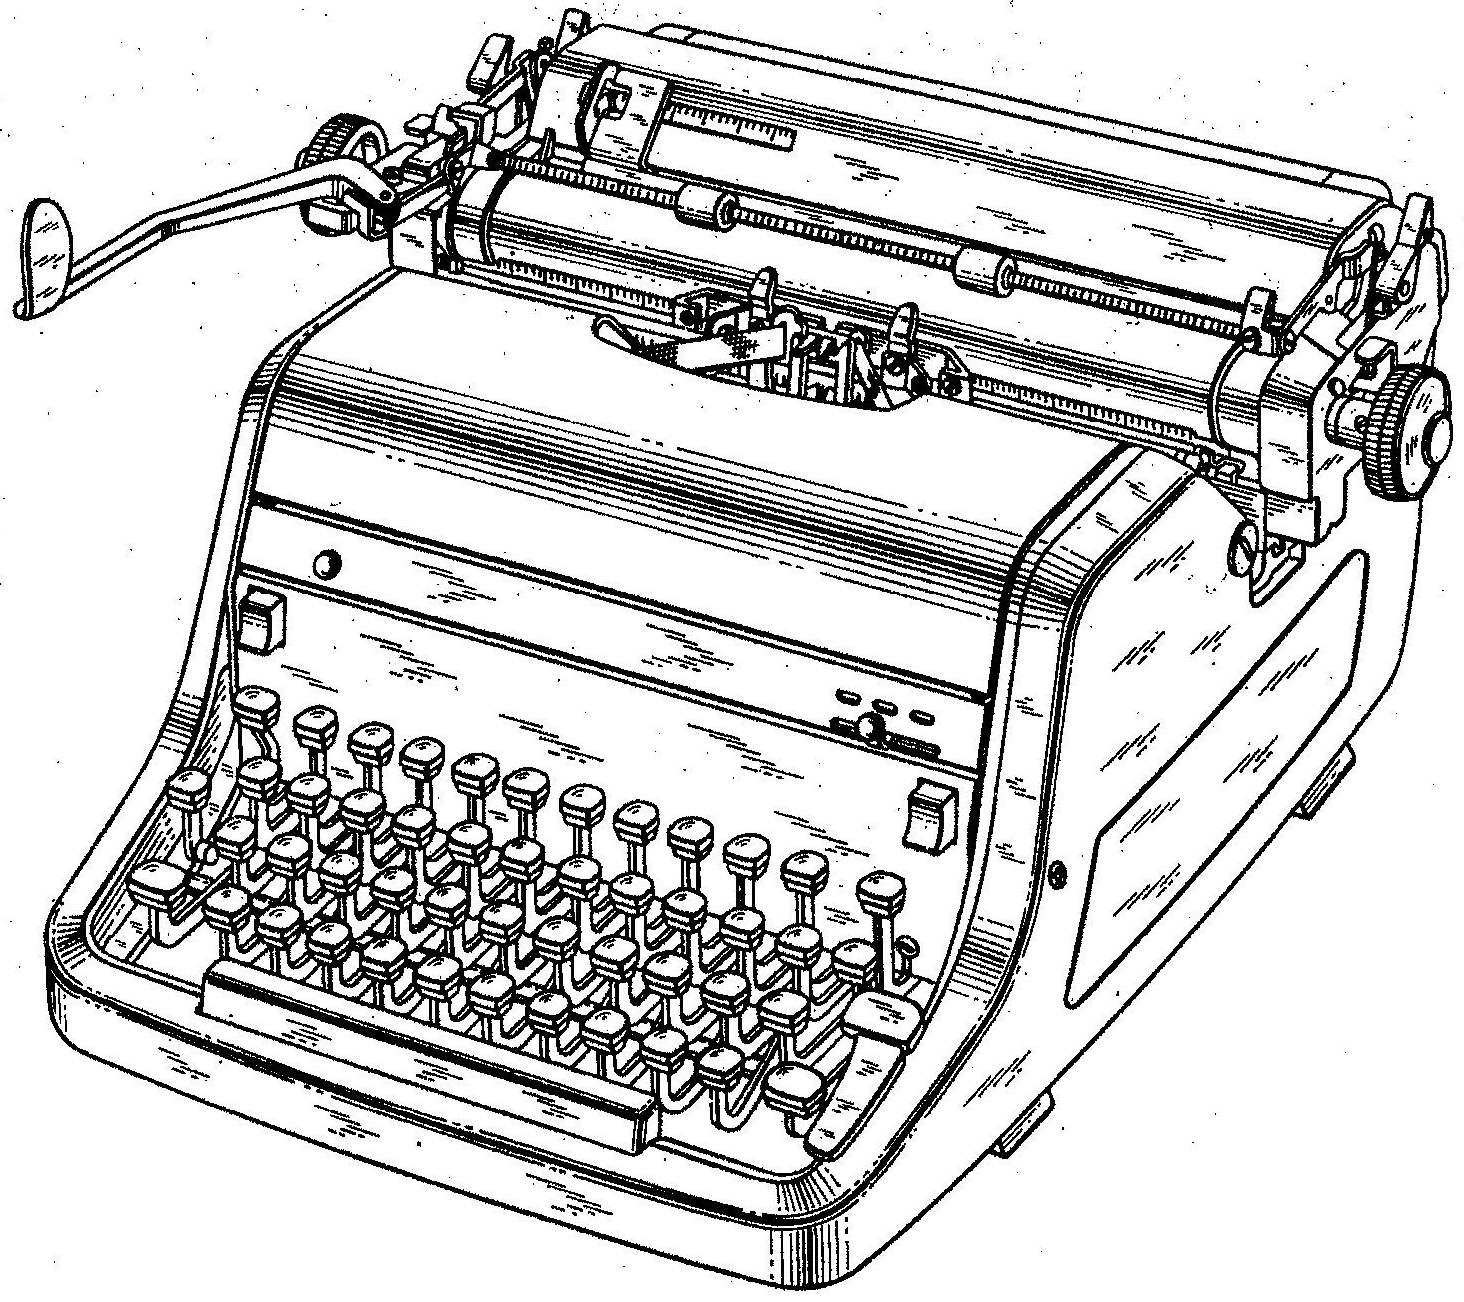 oz.Typewriter: On This Day in Typewriter History: Royal's